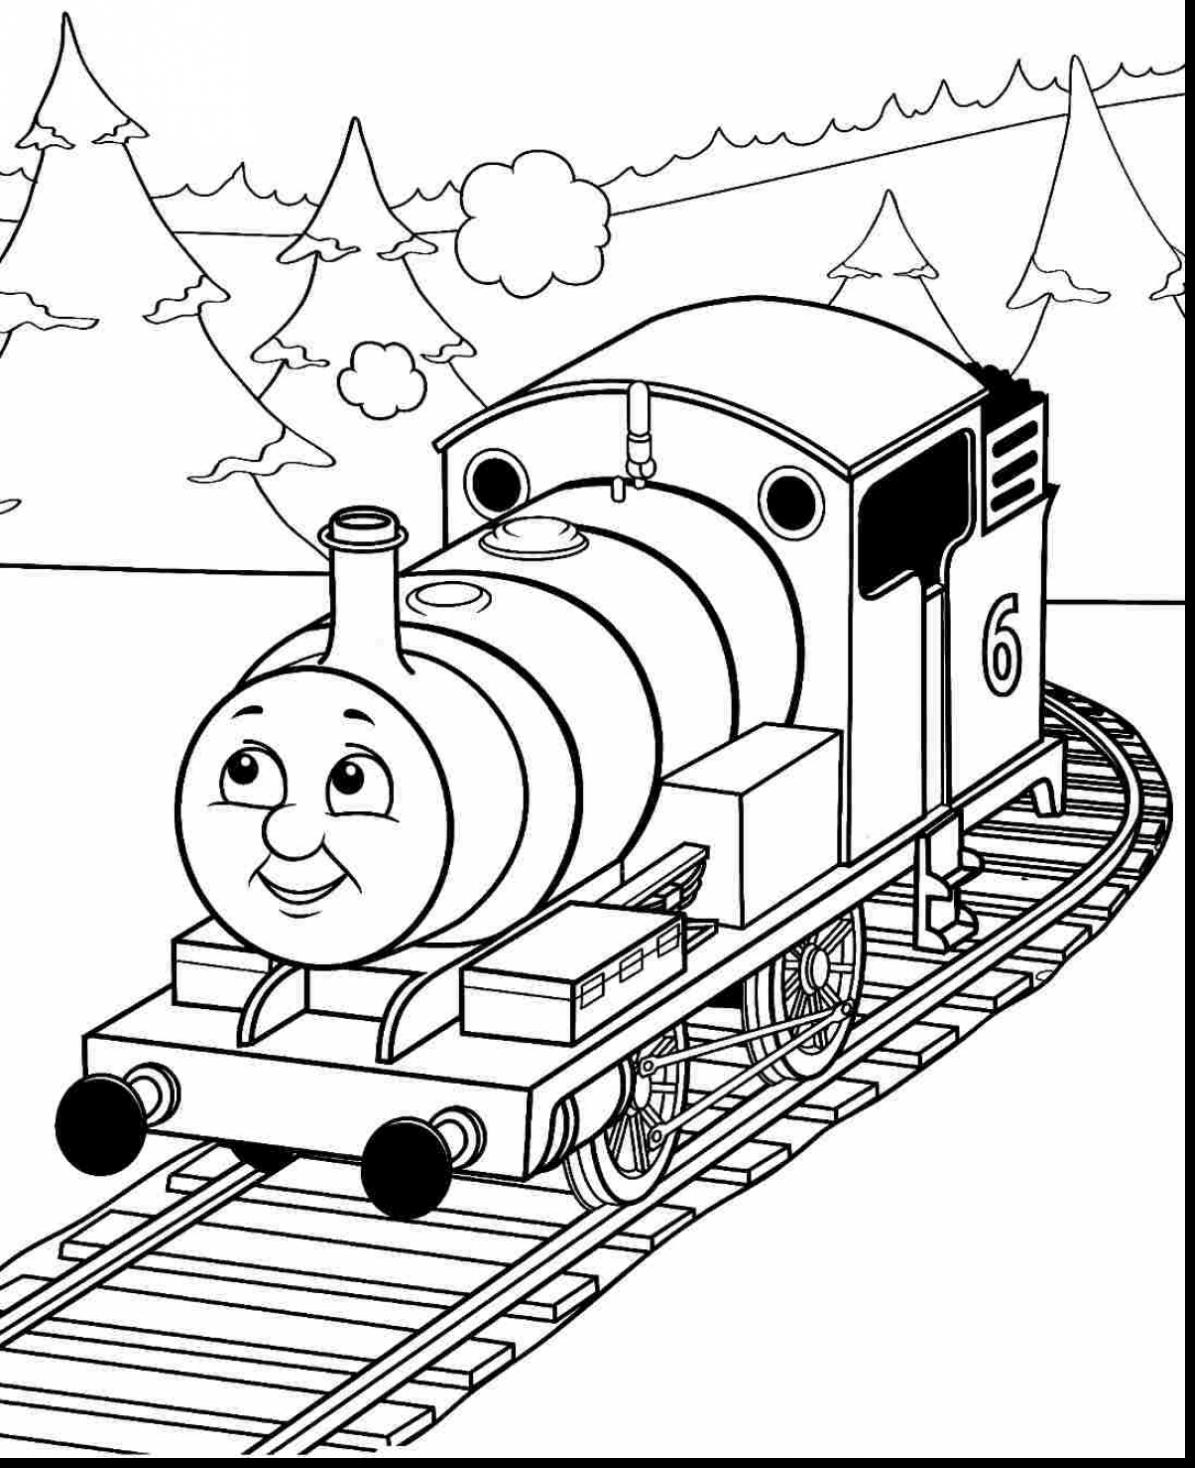 Thomas And Friends Coloring Pages Coloring Ideas Engine Coloring Pages Ideas Thomas The Withew And